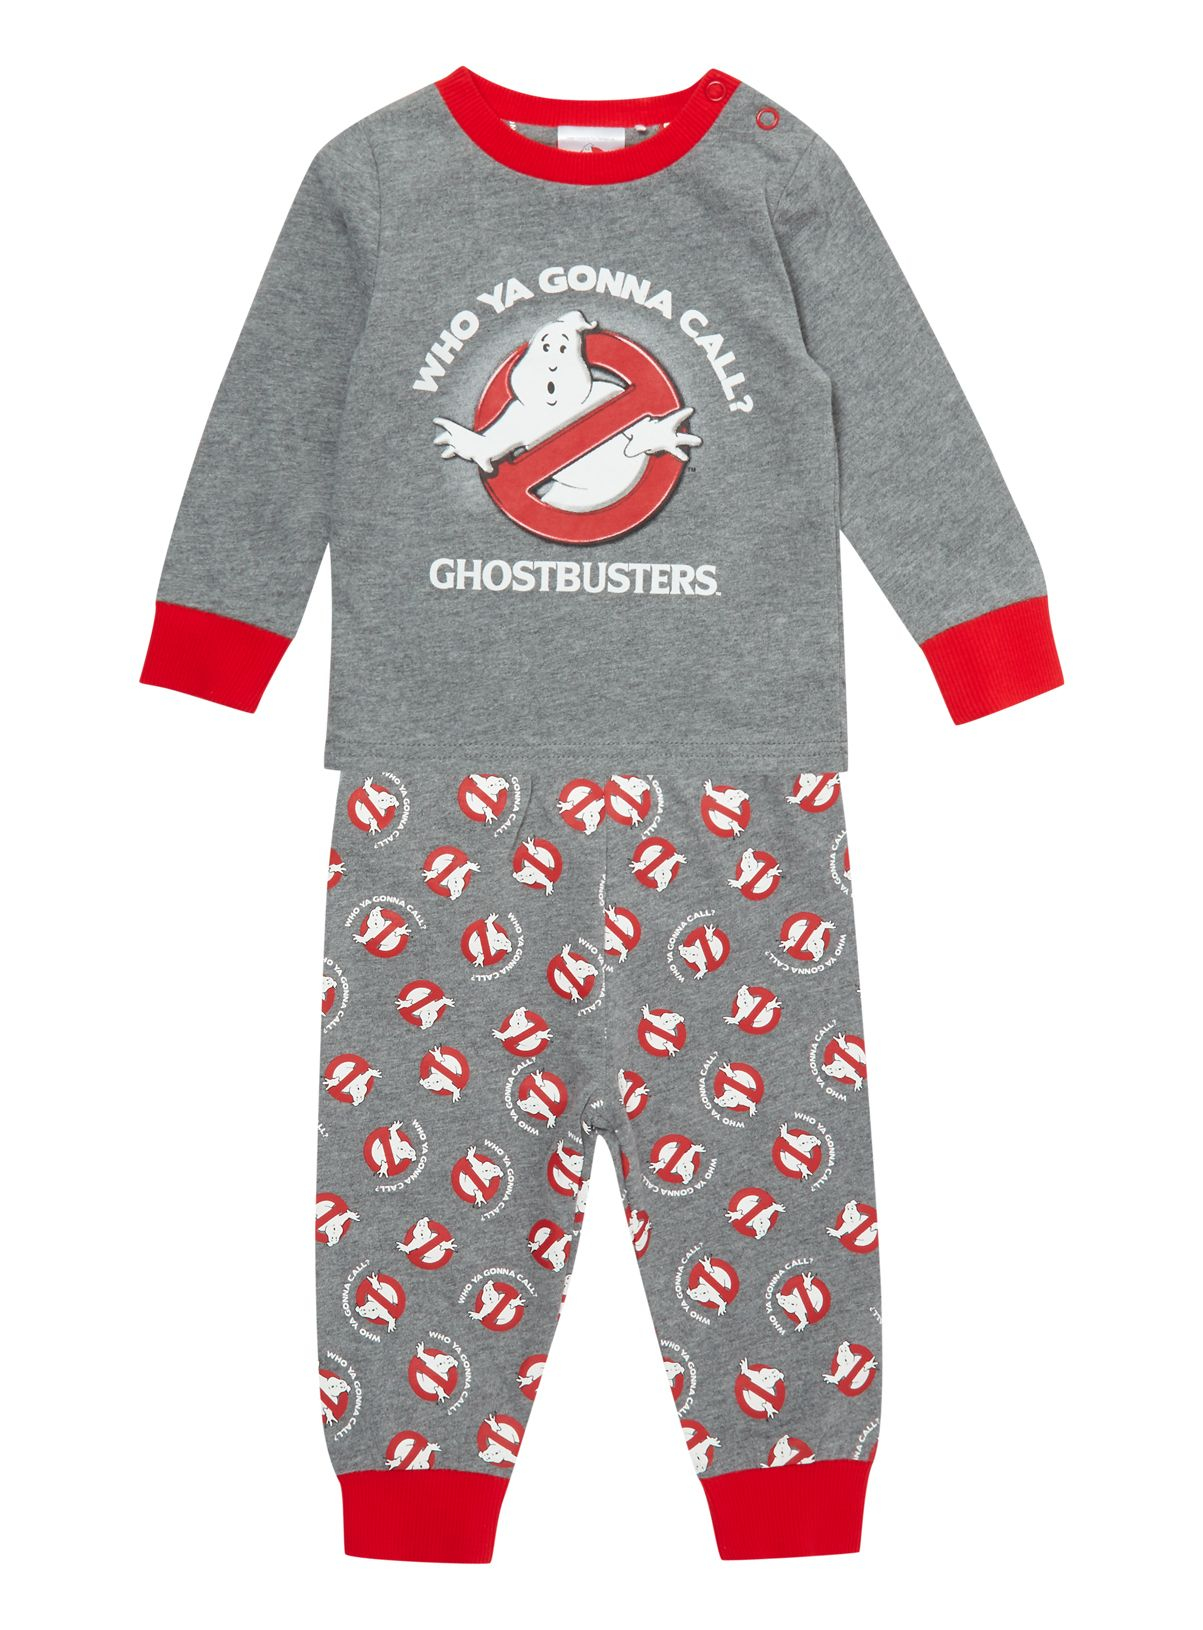 7e95de46cd06 Make a spooky addition to their seasonal nightwear range with these ...